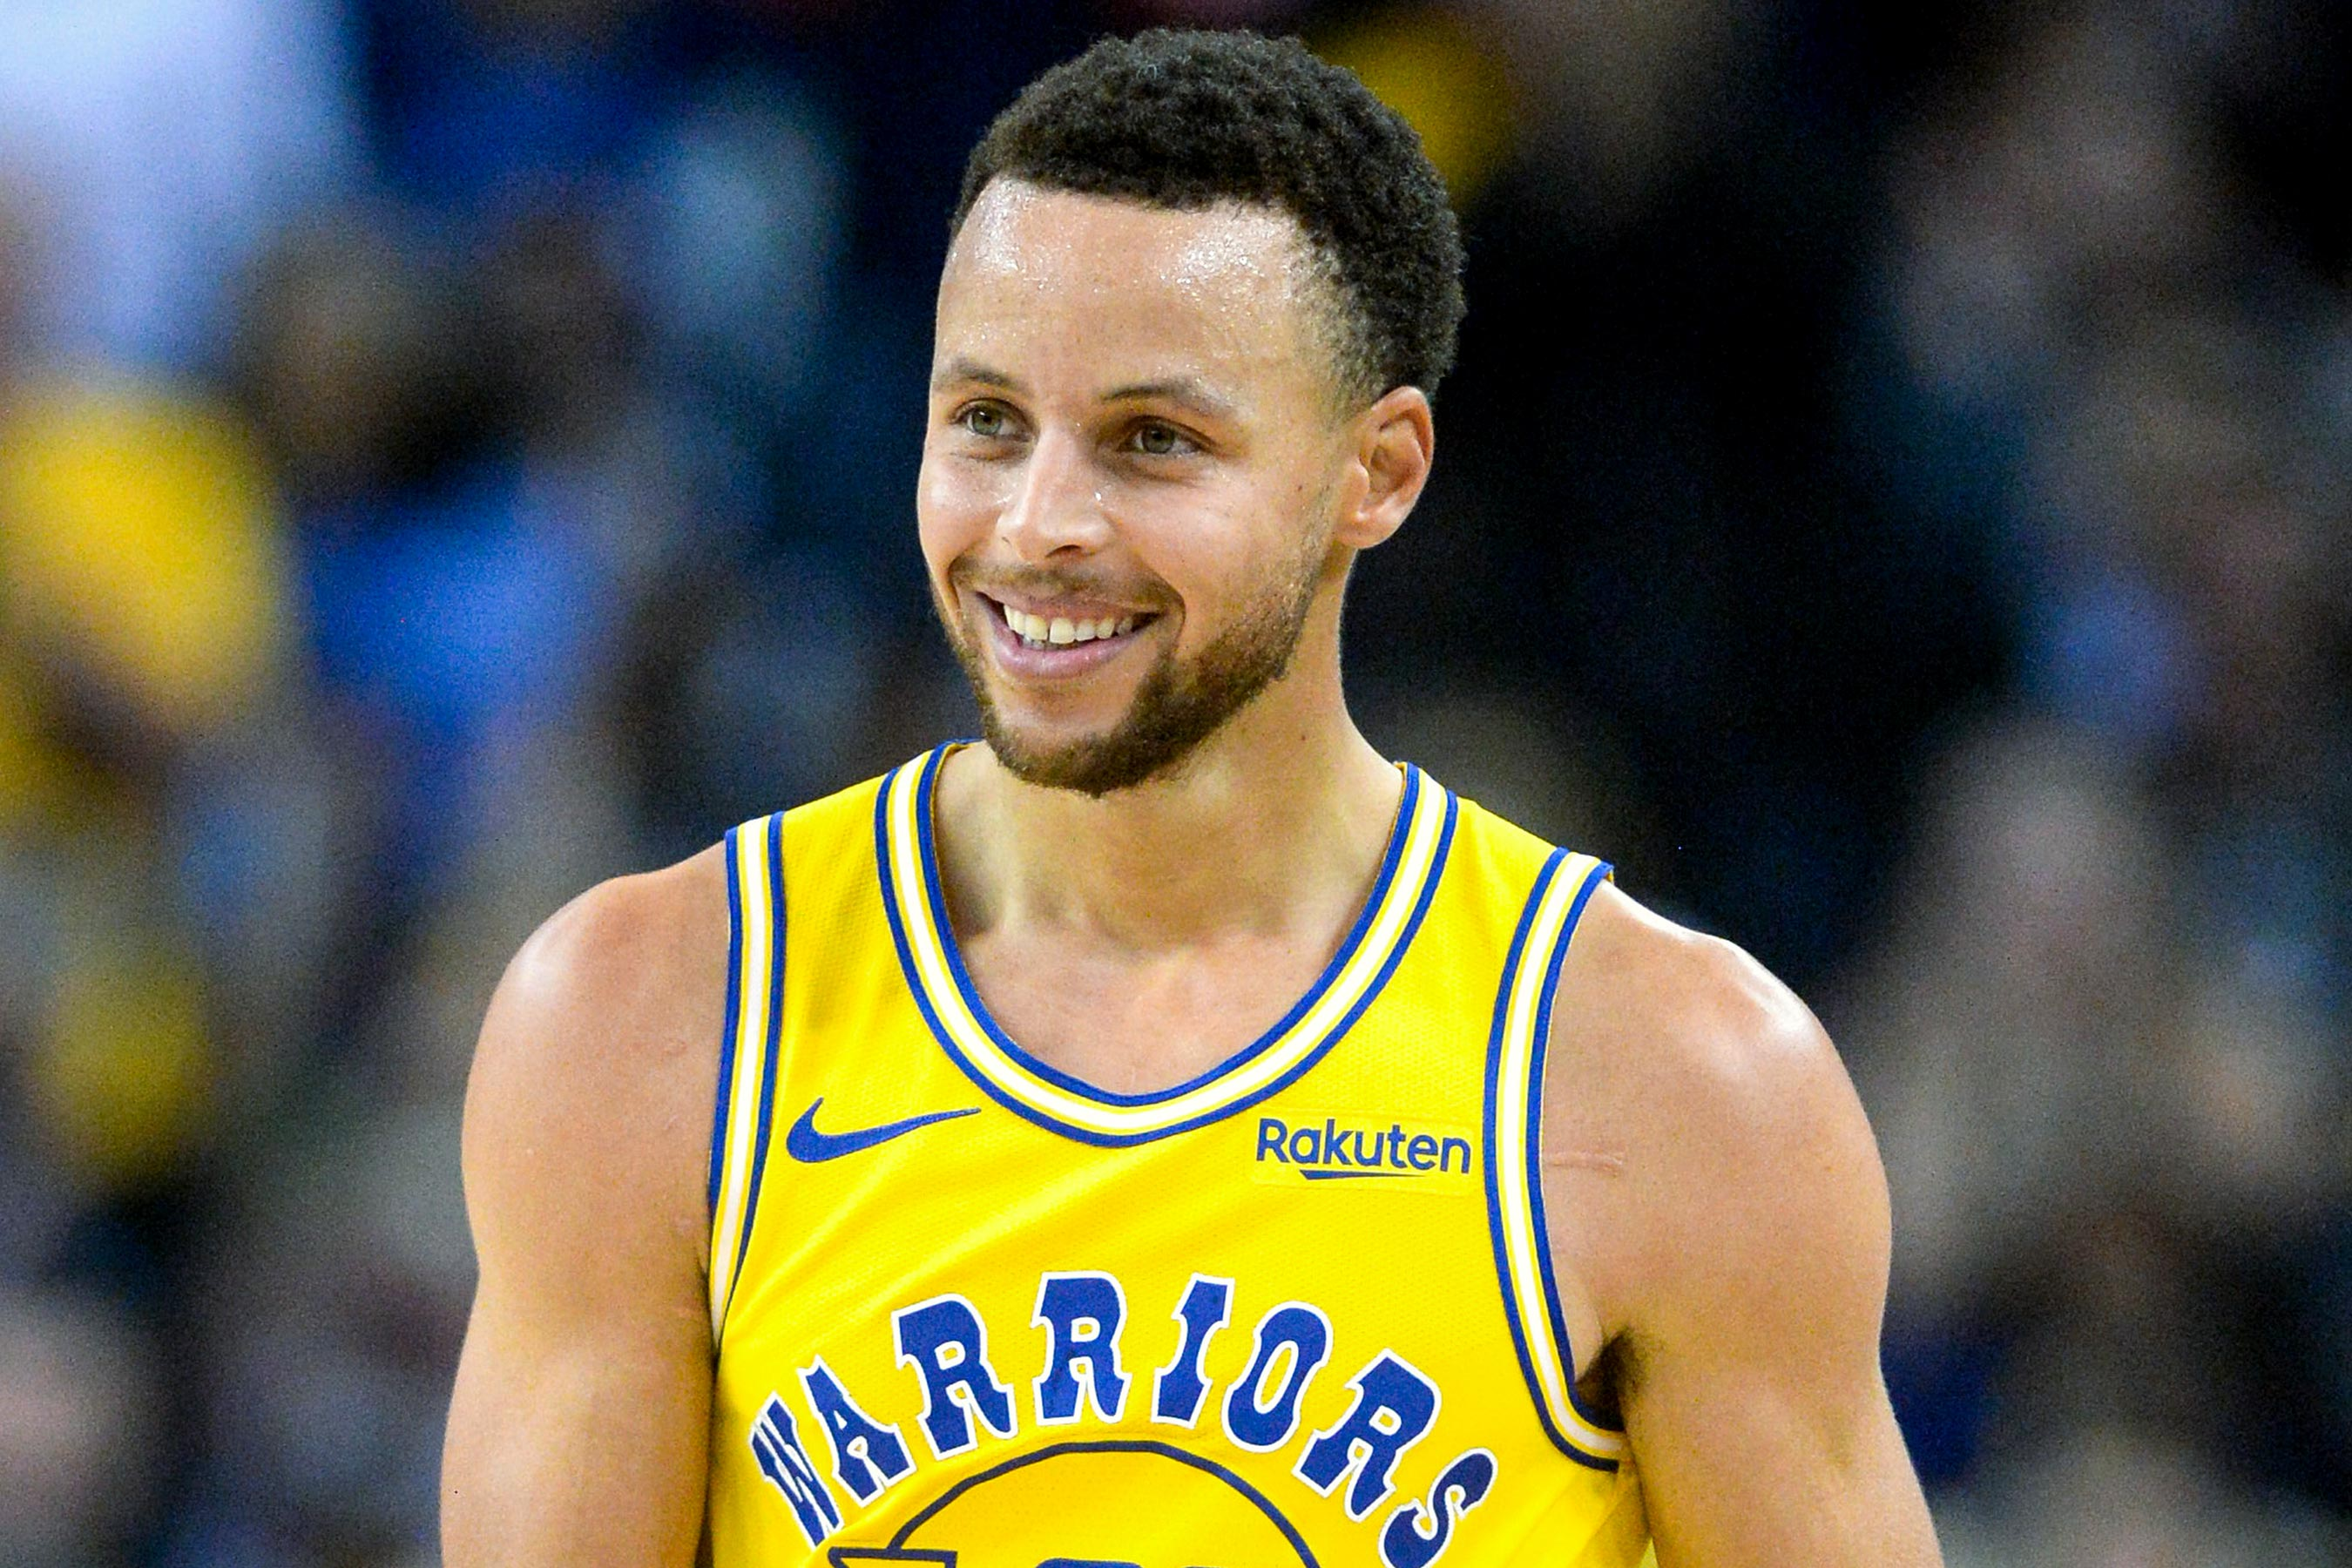 Stephen Curry Gifts Shoes to Hundreds of Oakland Kids as Warriors Prepare for San Francisco Move